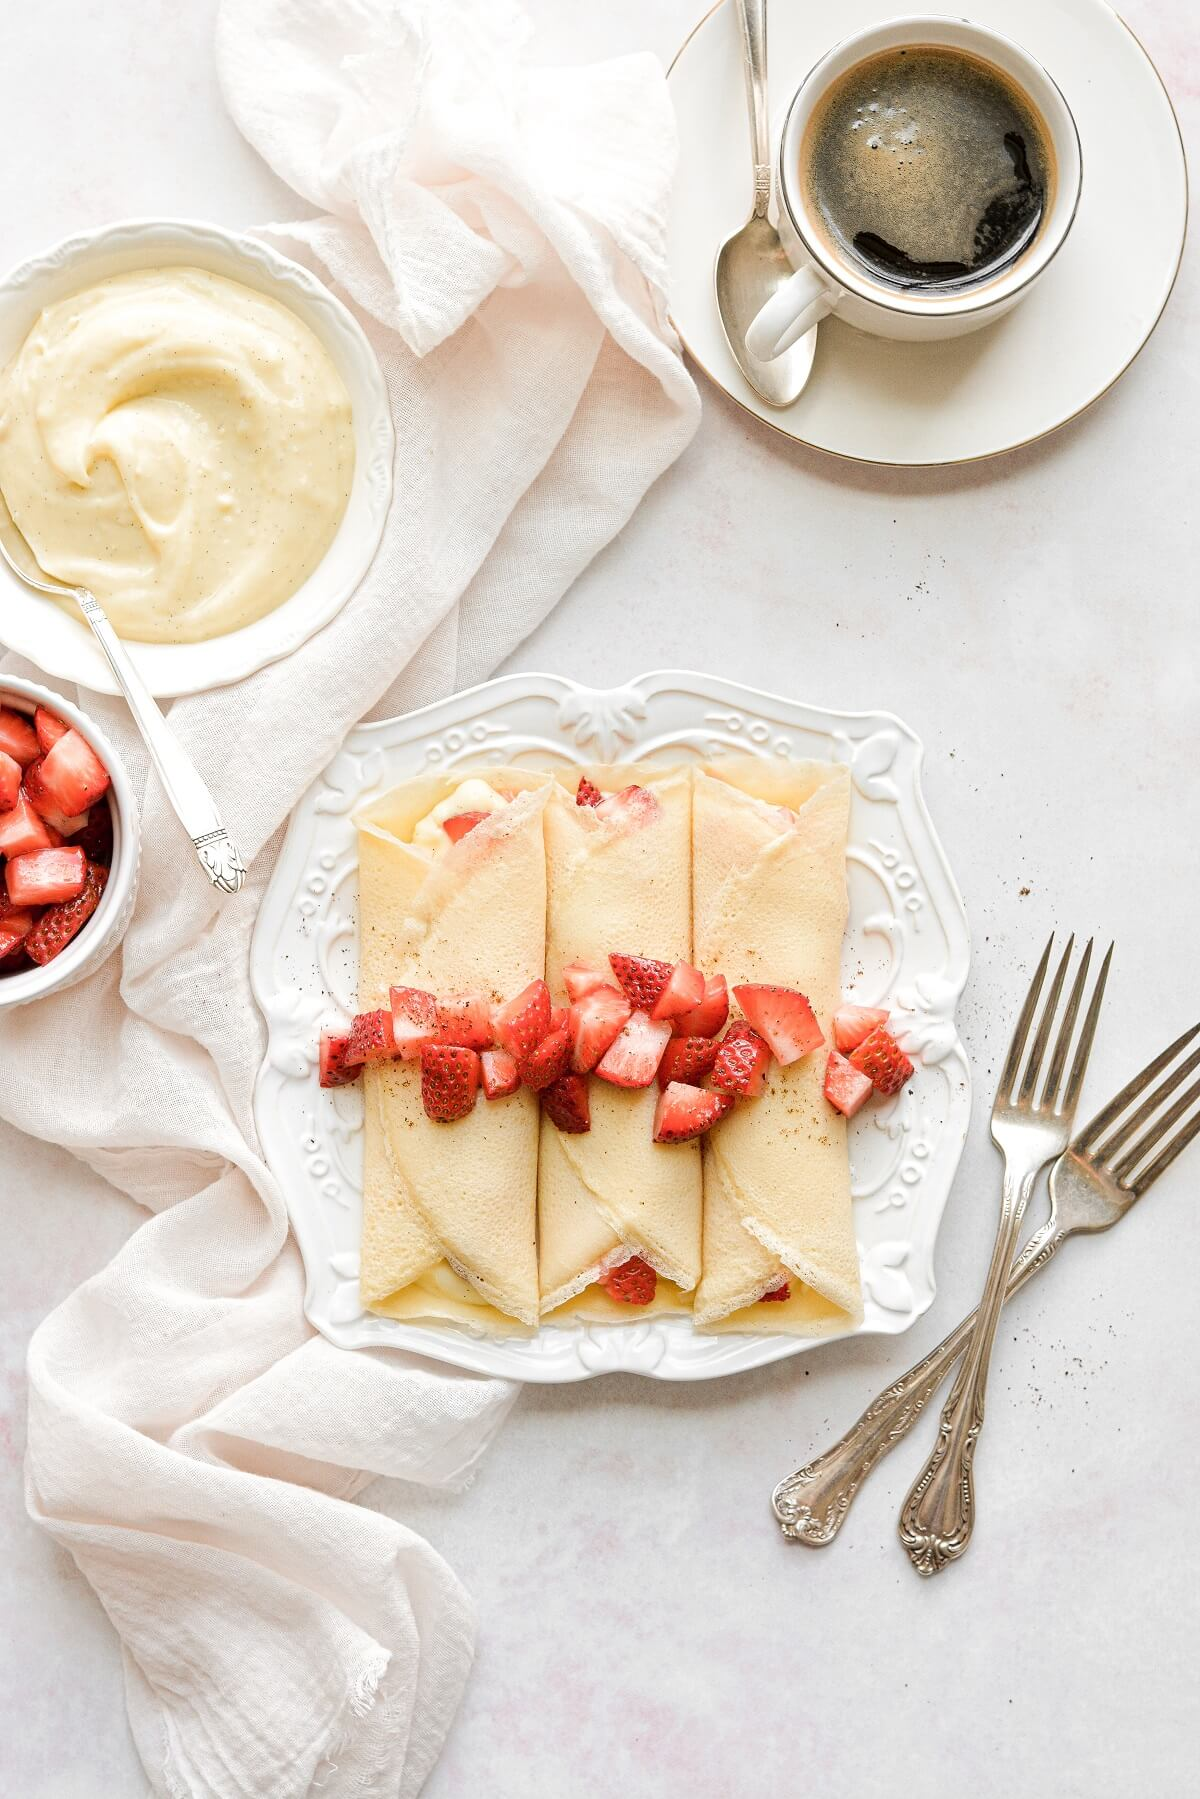 Three homemade crepes, topped with strawberries.